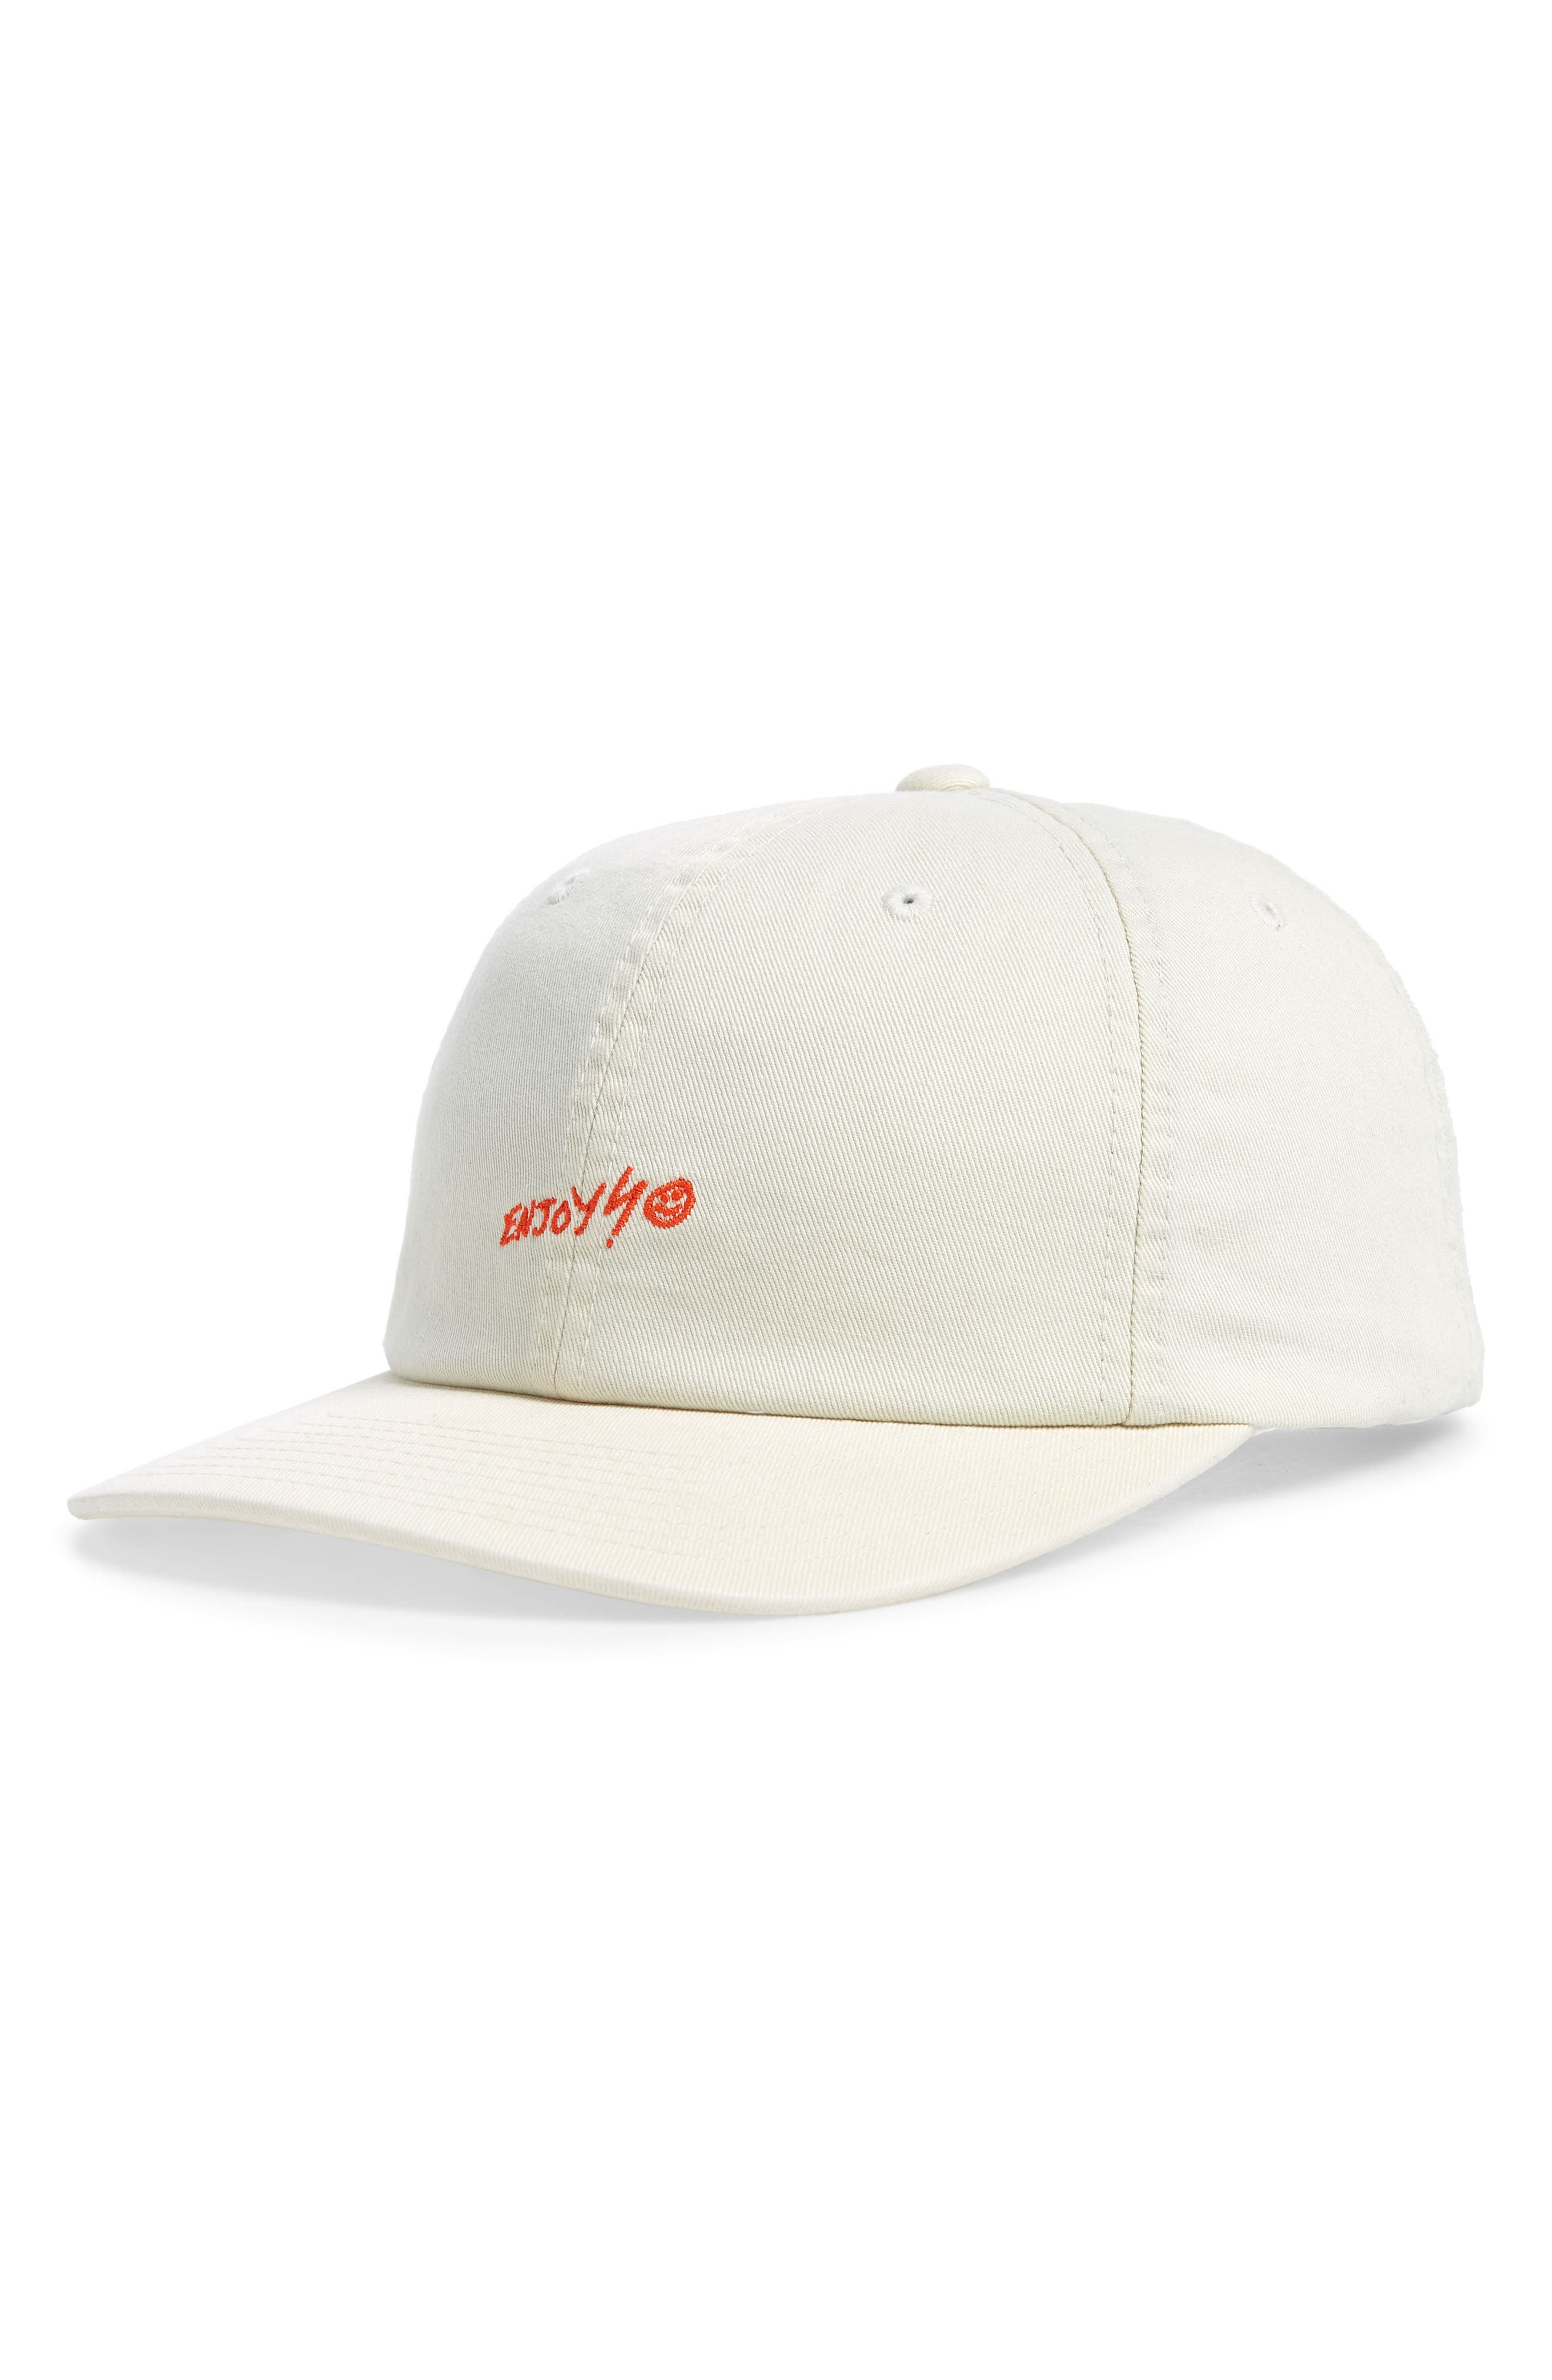 HURLEY Enjoy Embroidered Ball Cap - Brown in Light Cream